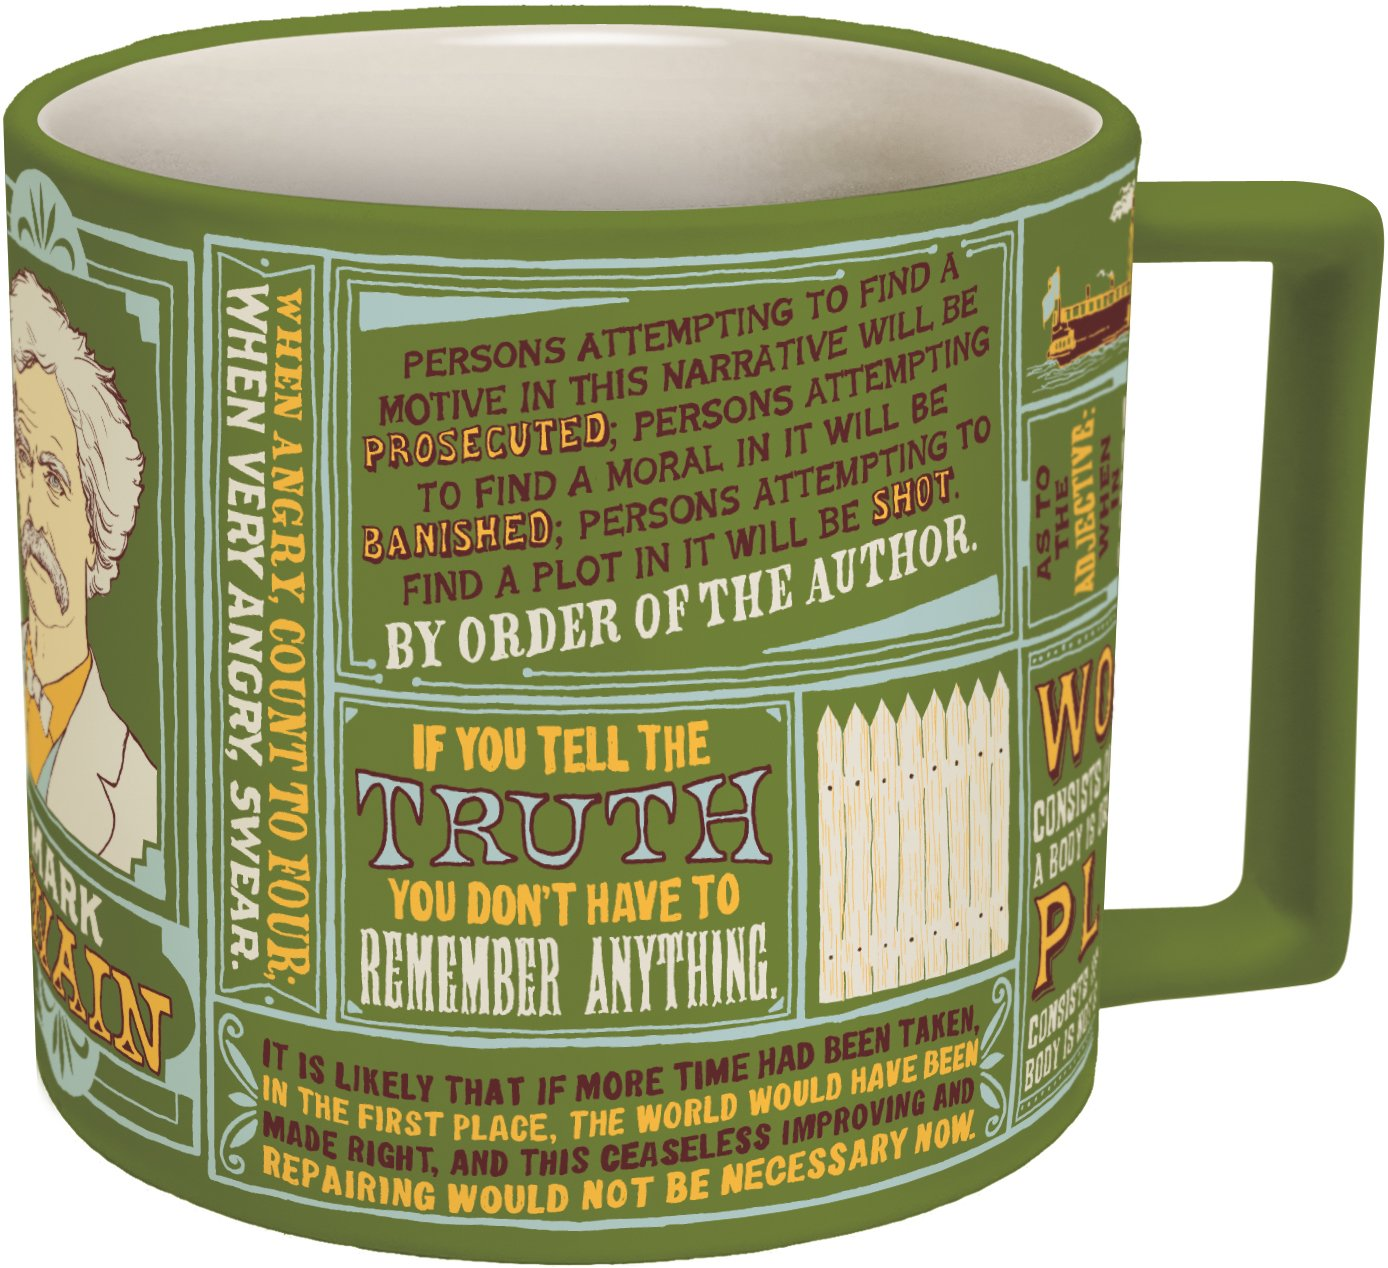 Mark Twain Coffee Mug - Twain's Most Famous Quotes and Depictions - Comes in a Fun Gift Box by The Unemployed Philosophers Guild (Image #1)